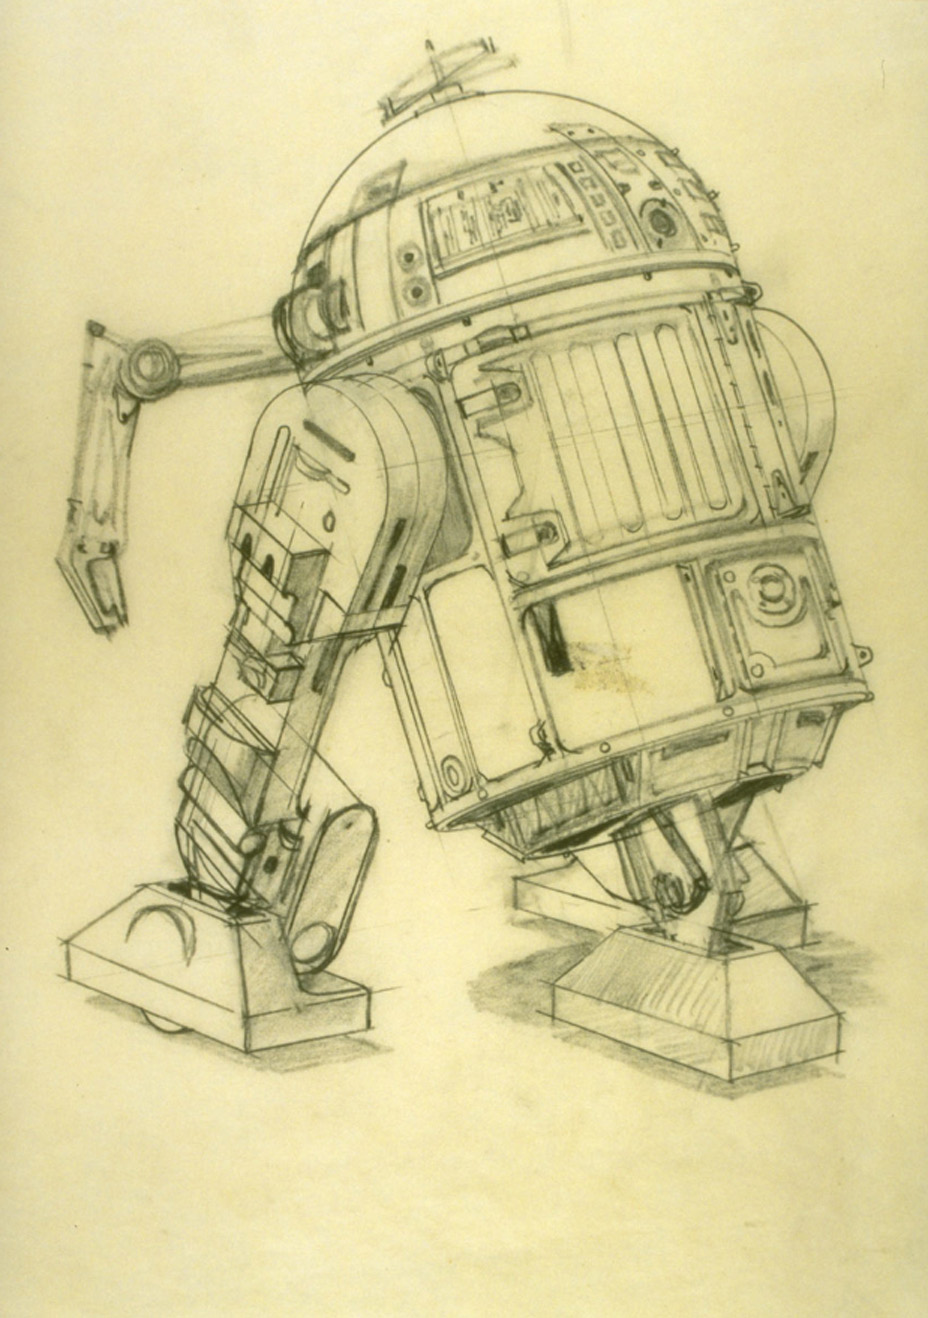 R2-D2 concept art from A New Hope